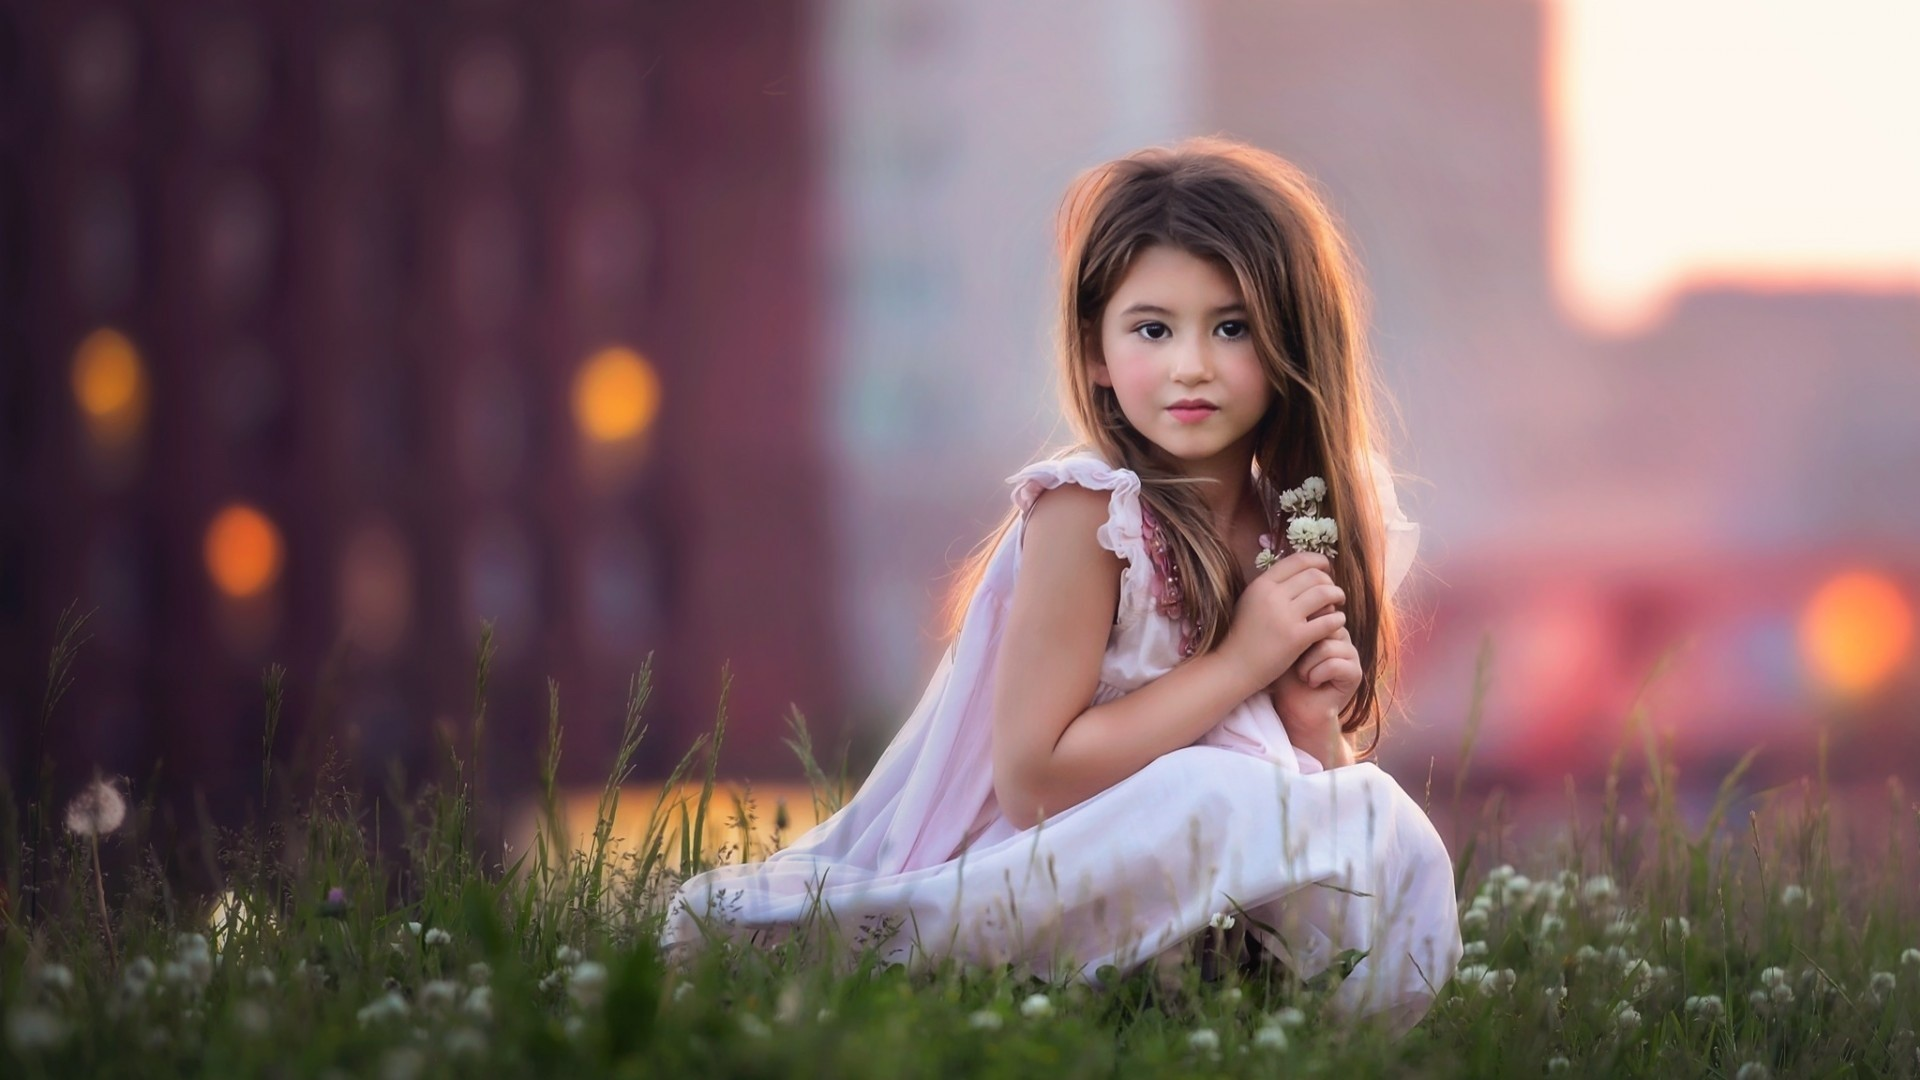 Pretty girls wallpapers 55 images 2570x1610 lily pretty girl wallpaperspictures voltagebd Image collections